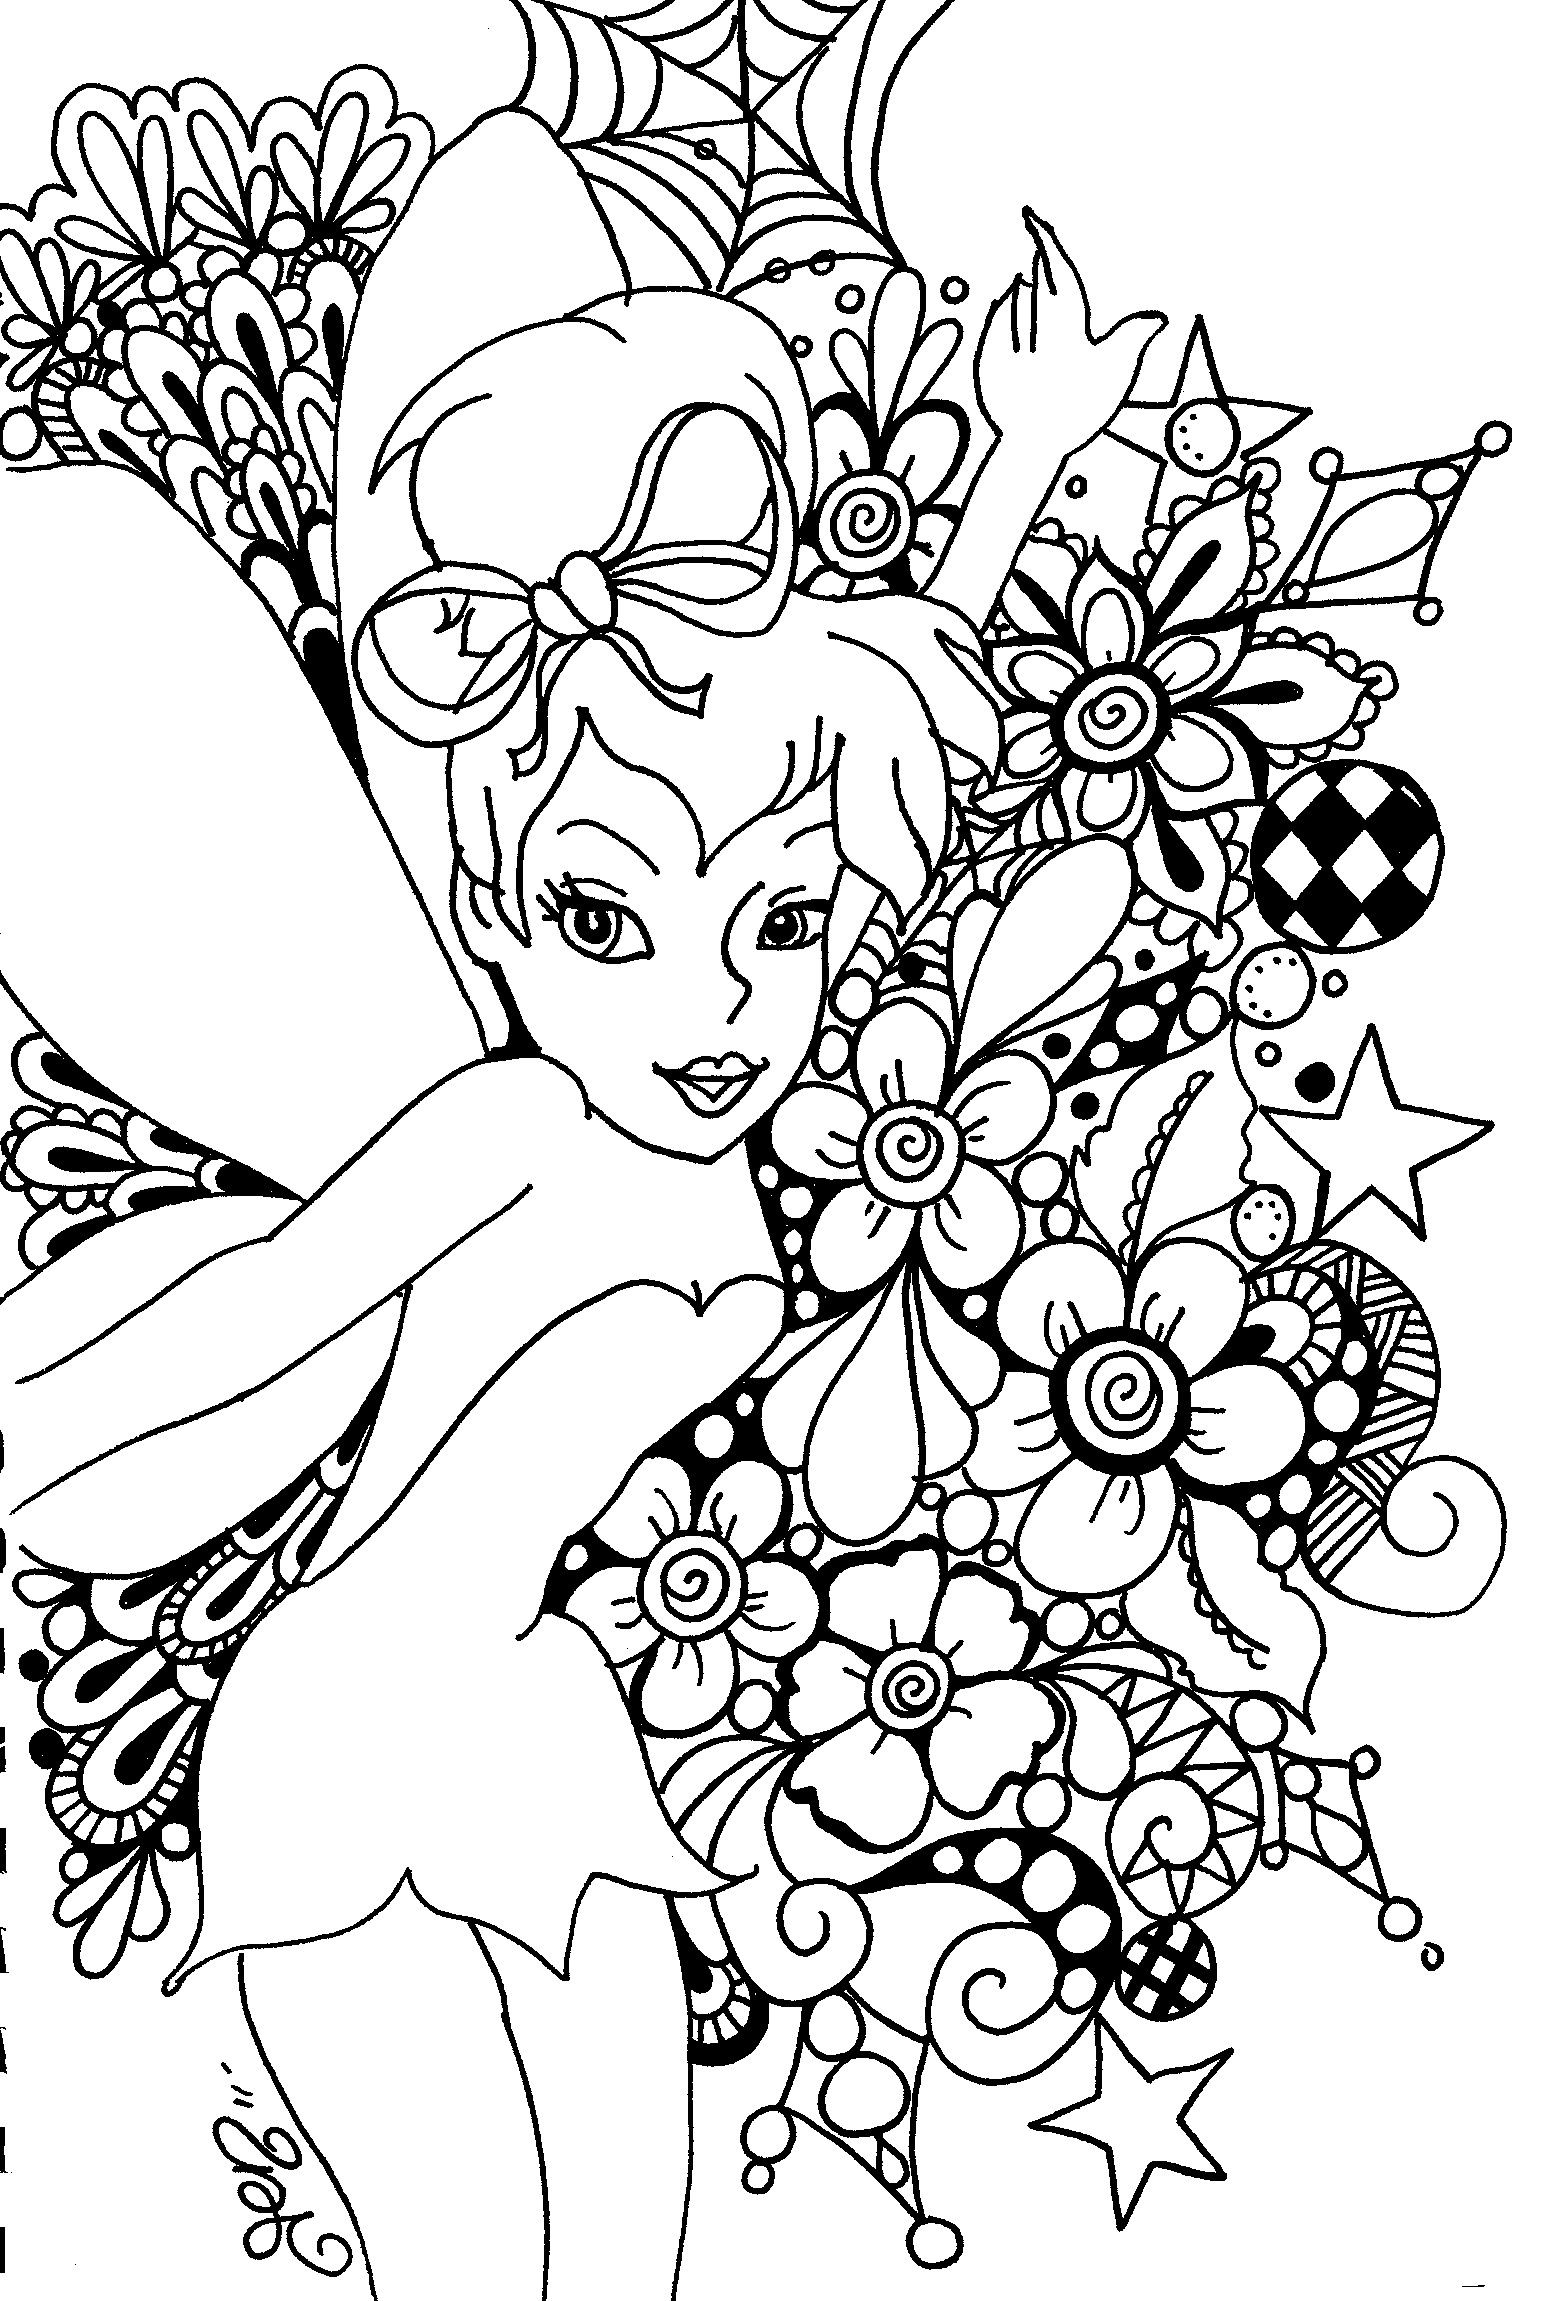 1543x2301 Free Printable Tinkerbell Coloring Pages For Kids Online